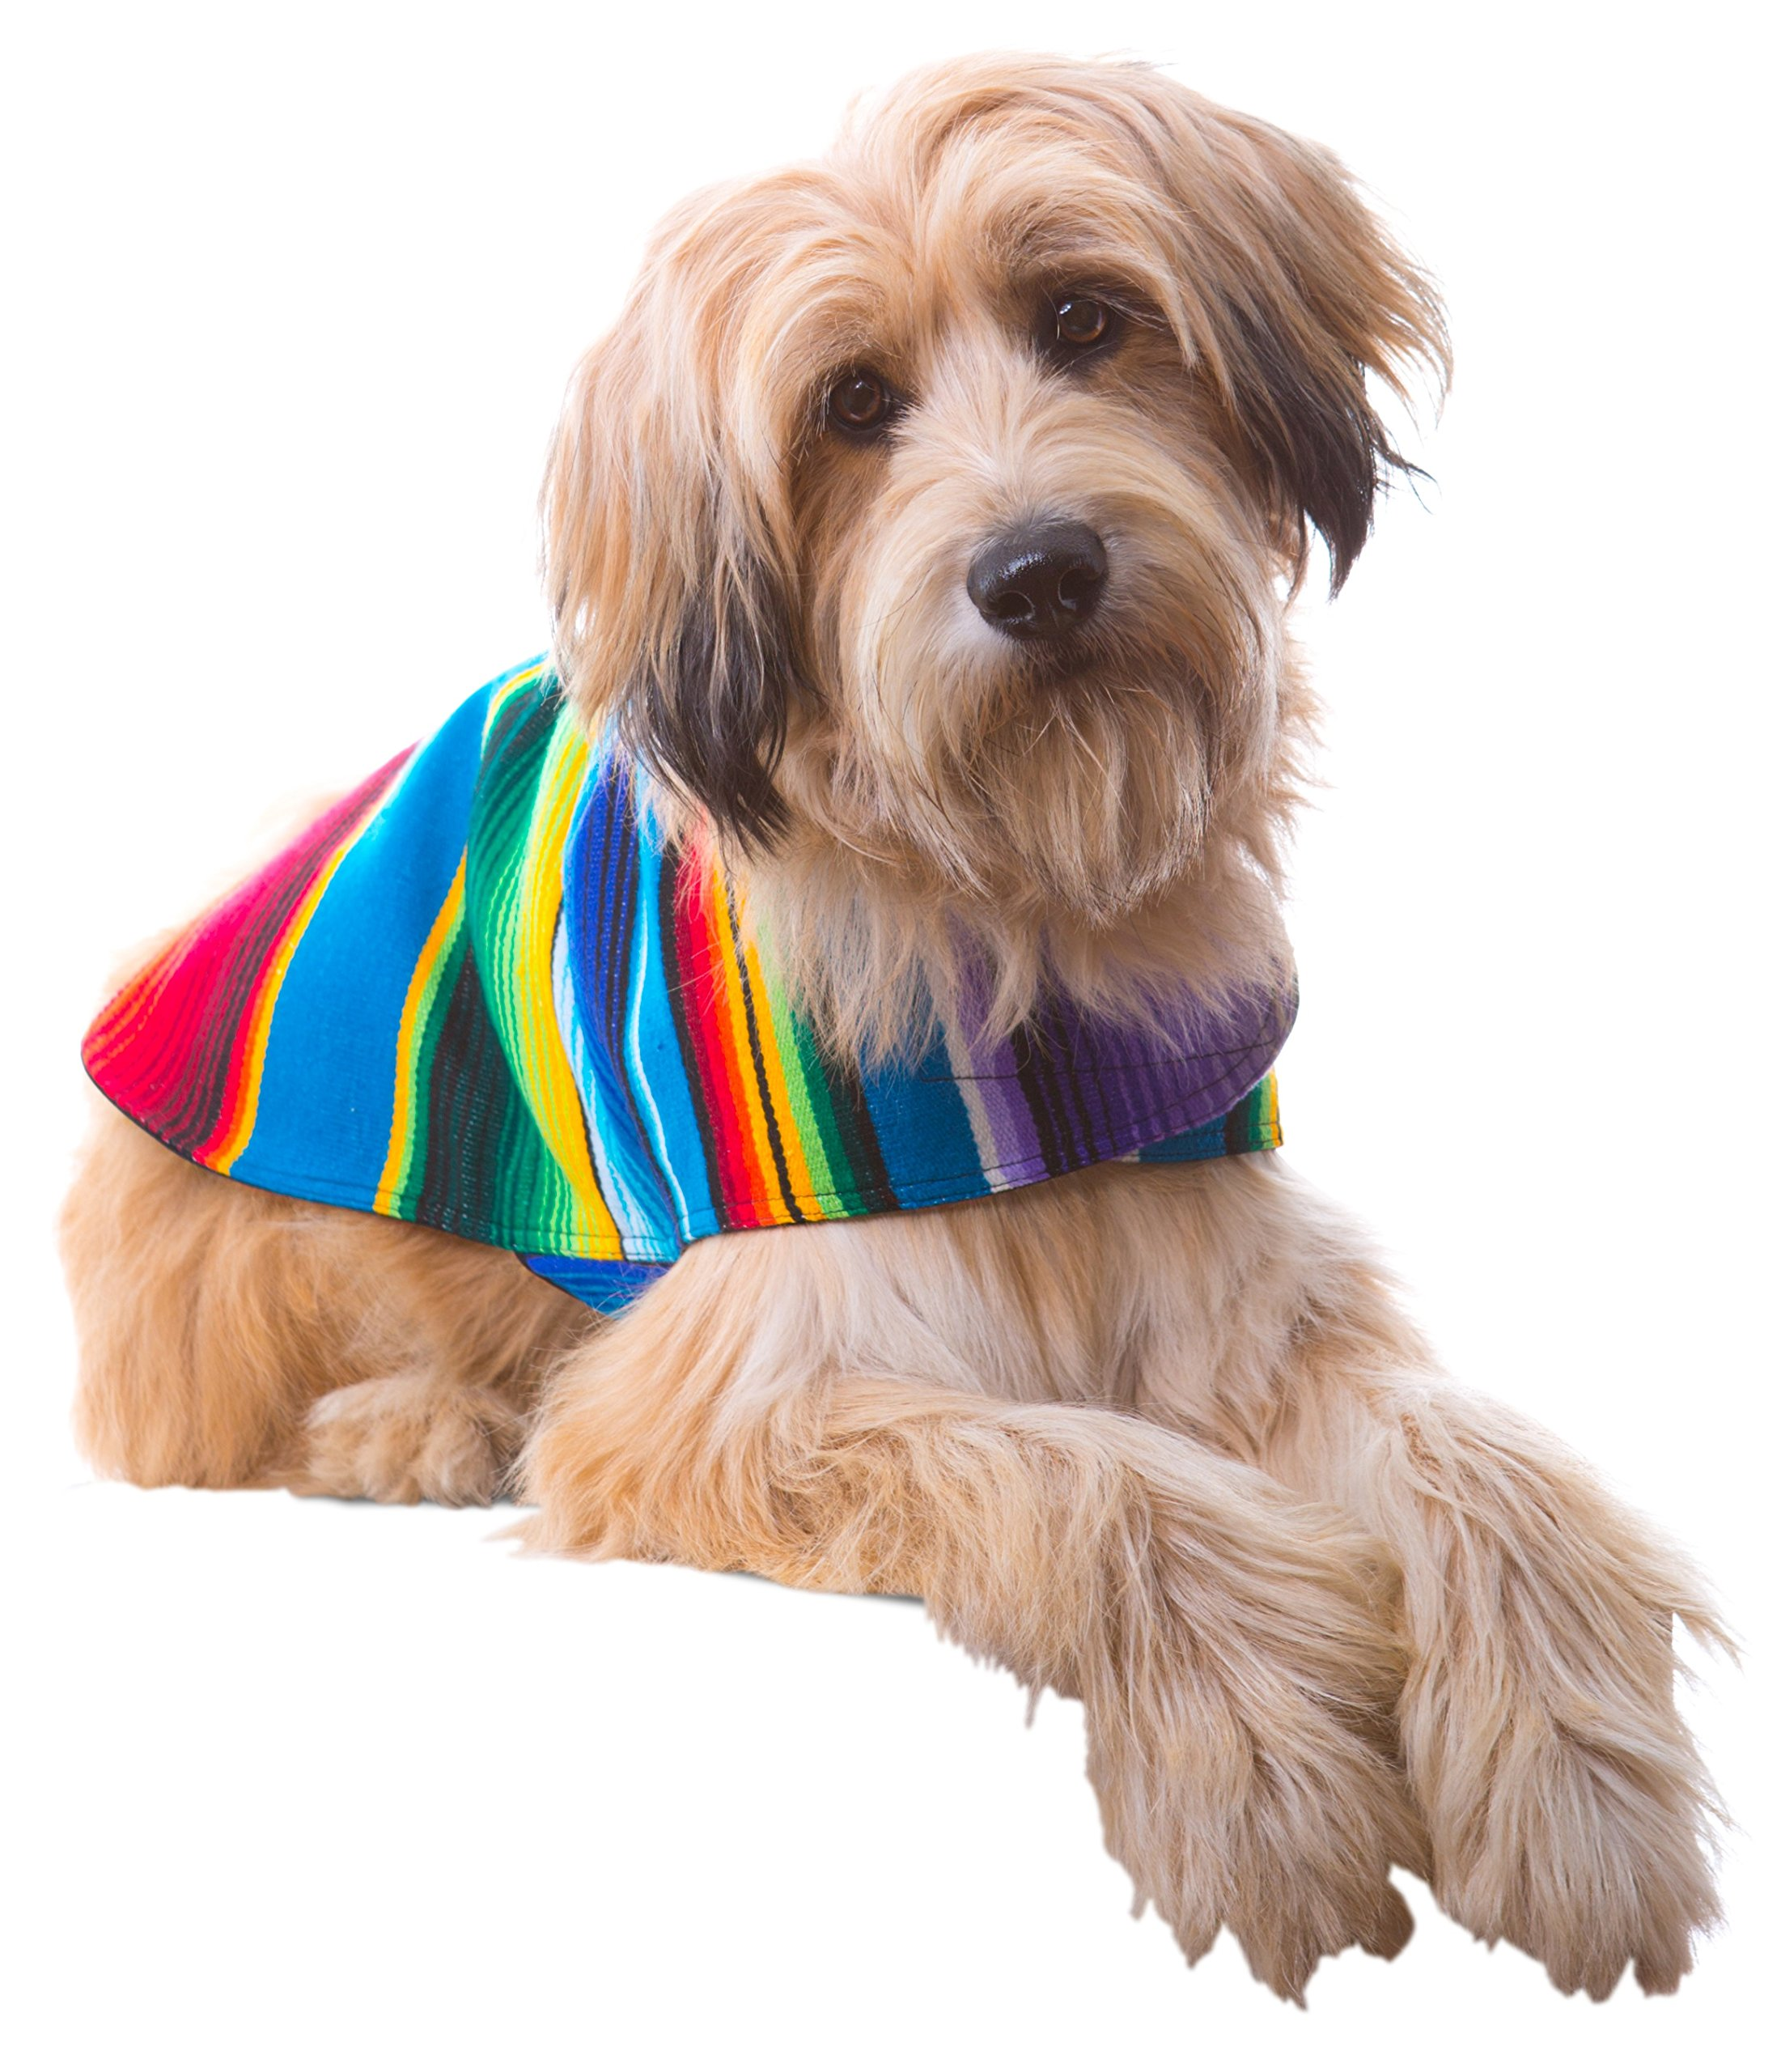 Baja Ponchos Dog Clothes - Handmade Dog Poncho from Authentic Mexican Blanket (No Fringe, Large) by Baja Ponchos